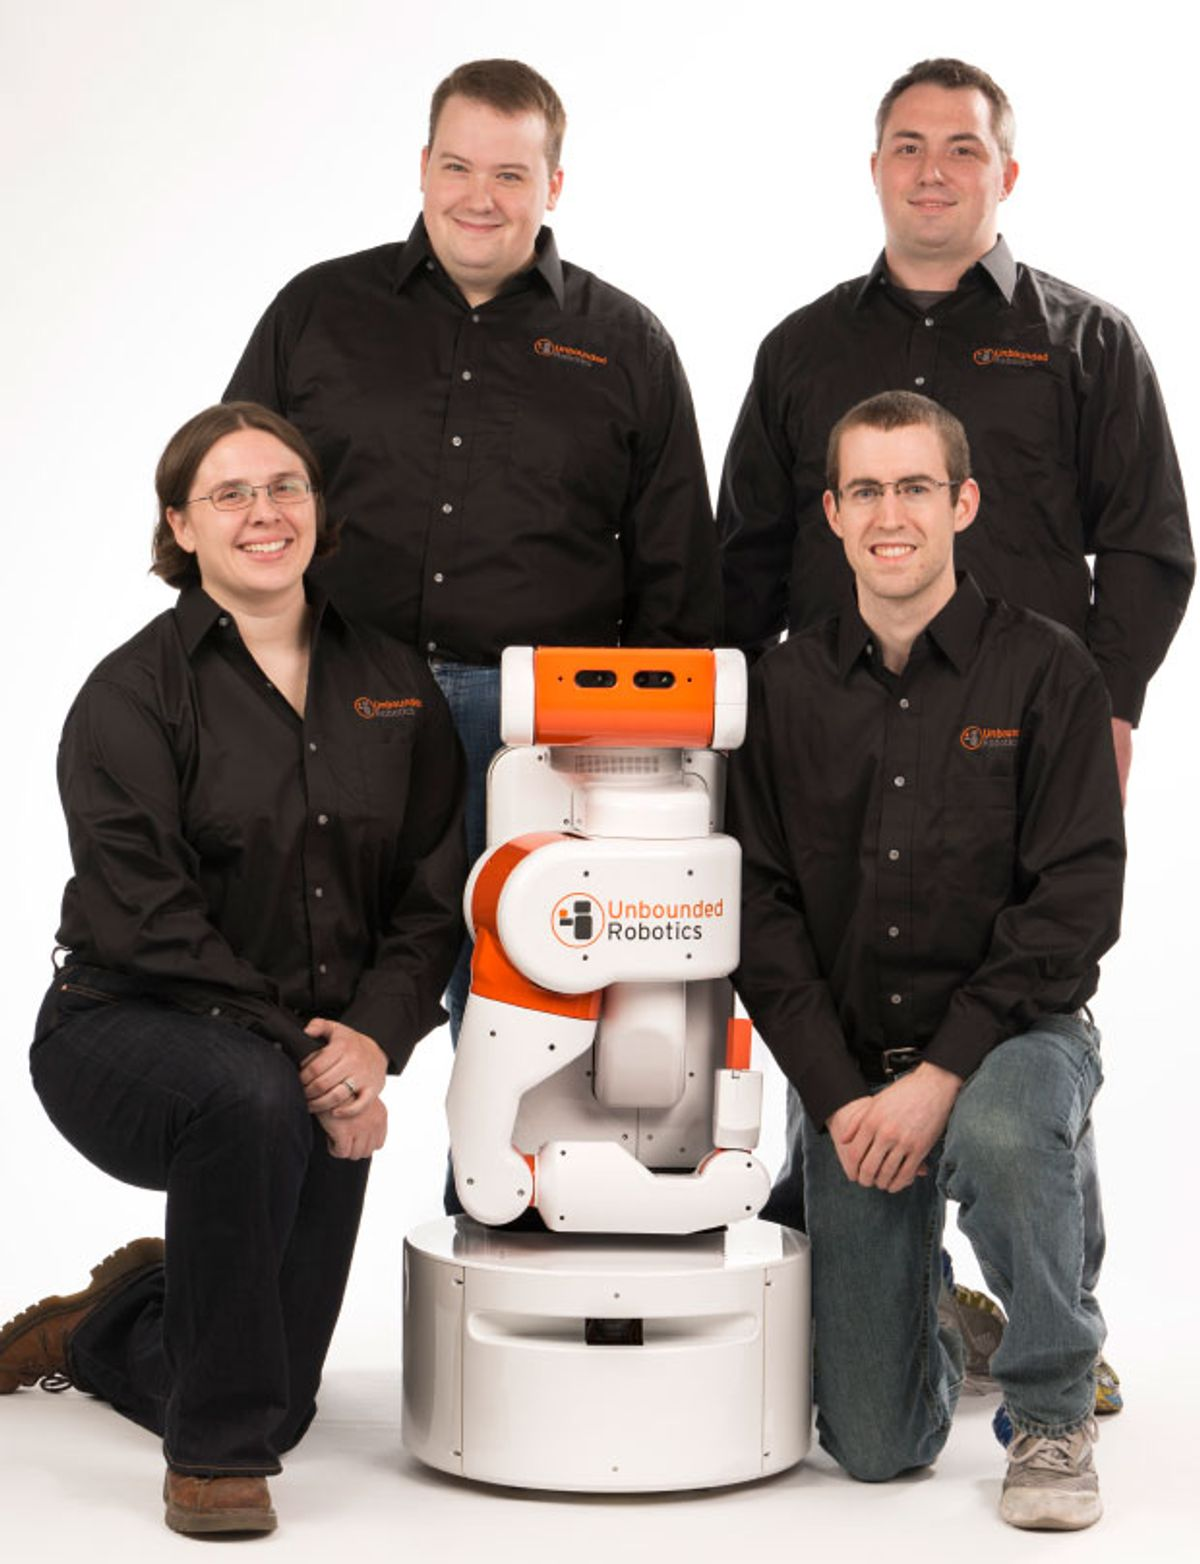 Interview: Unbounded Robotics on Why UBR-1 Will Change Everything